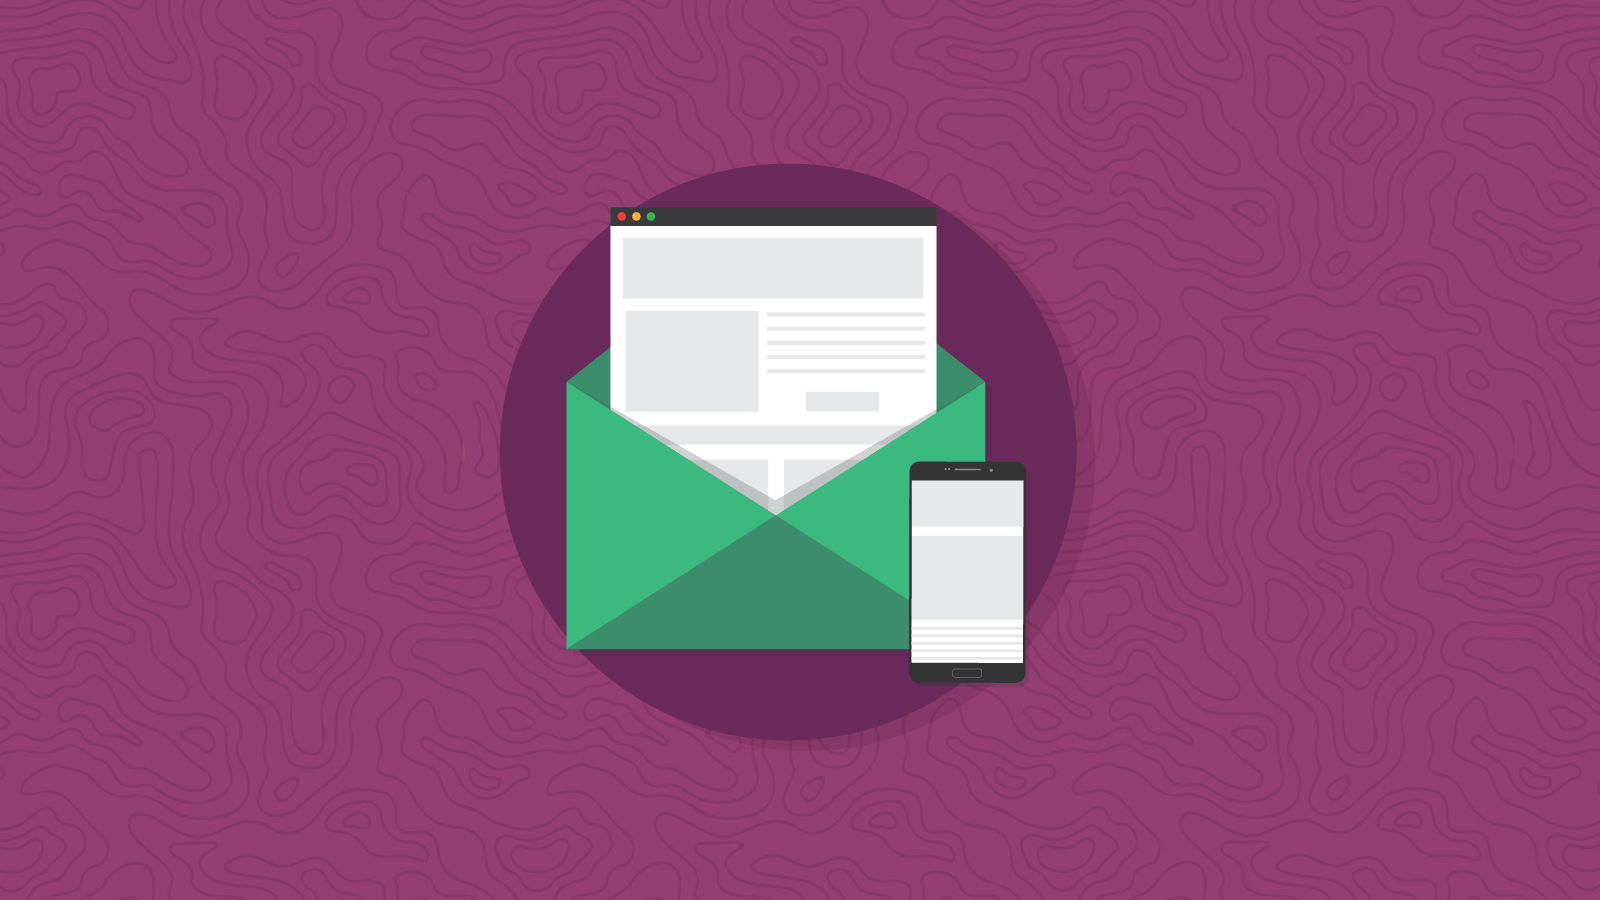 MailChimp Summer Email Template